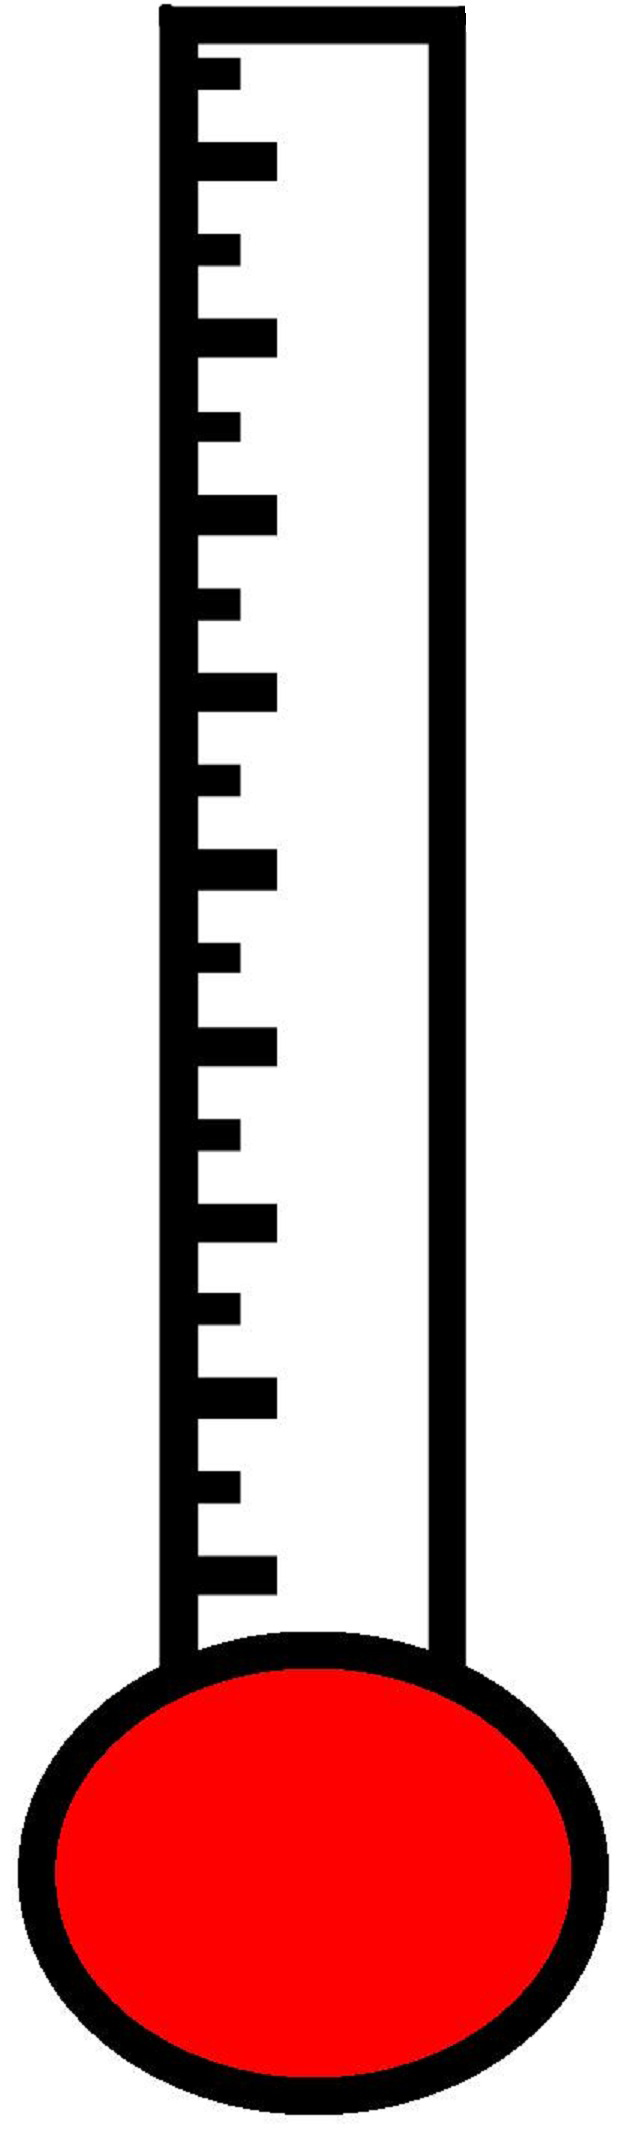 Blank Thermometer Clipart.